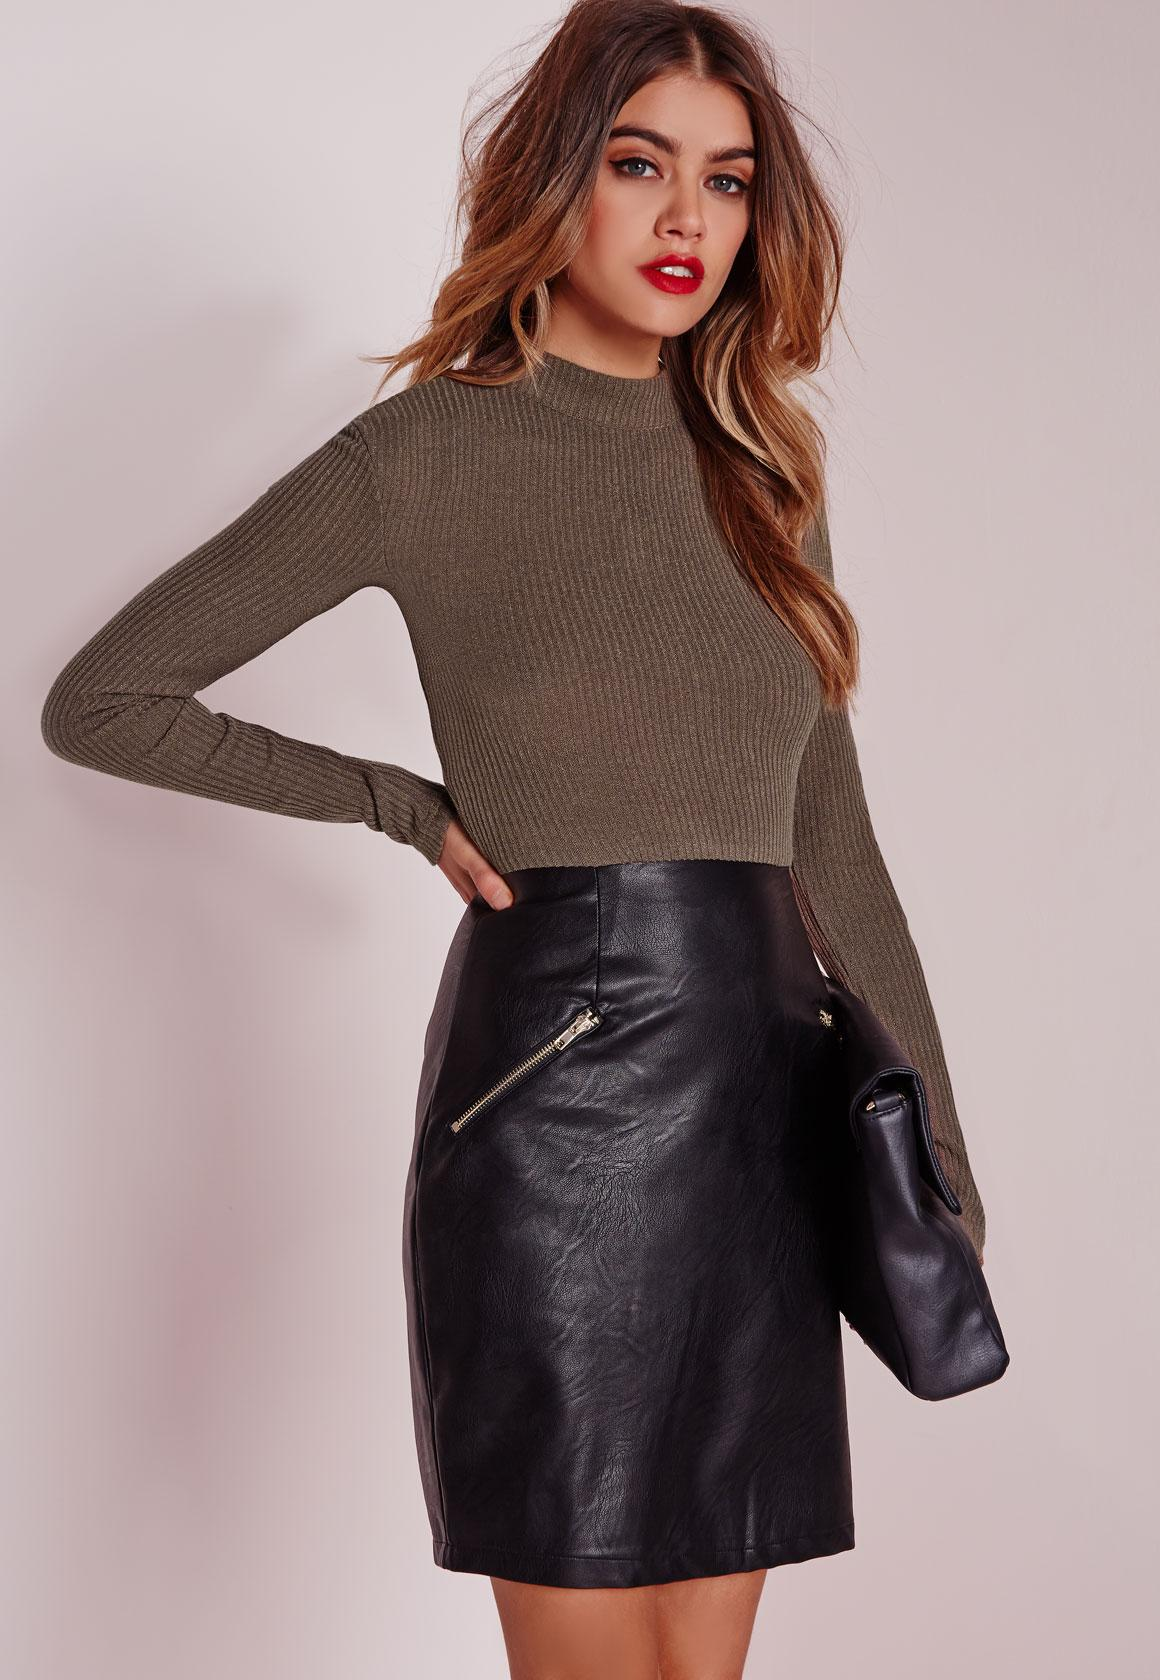 Contrast Bodycon Rib Dress Faux Leather Skirt Khaki | Missguided